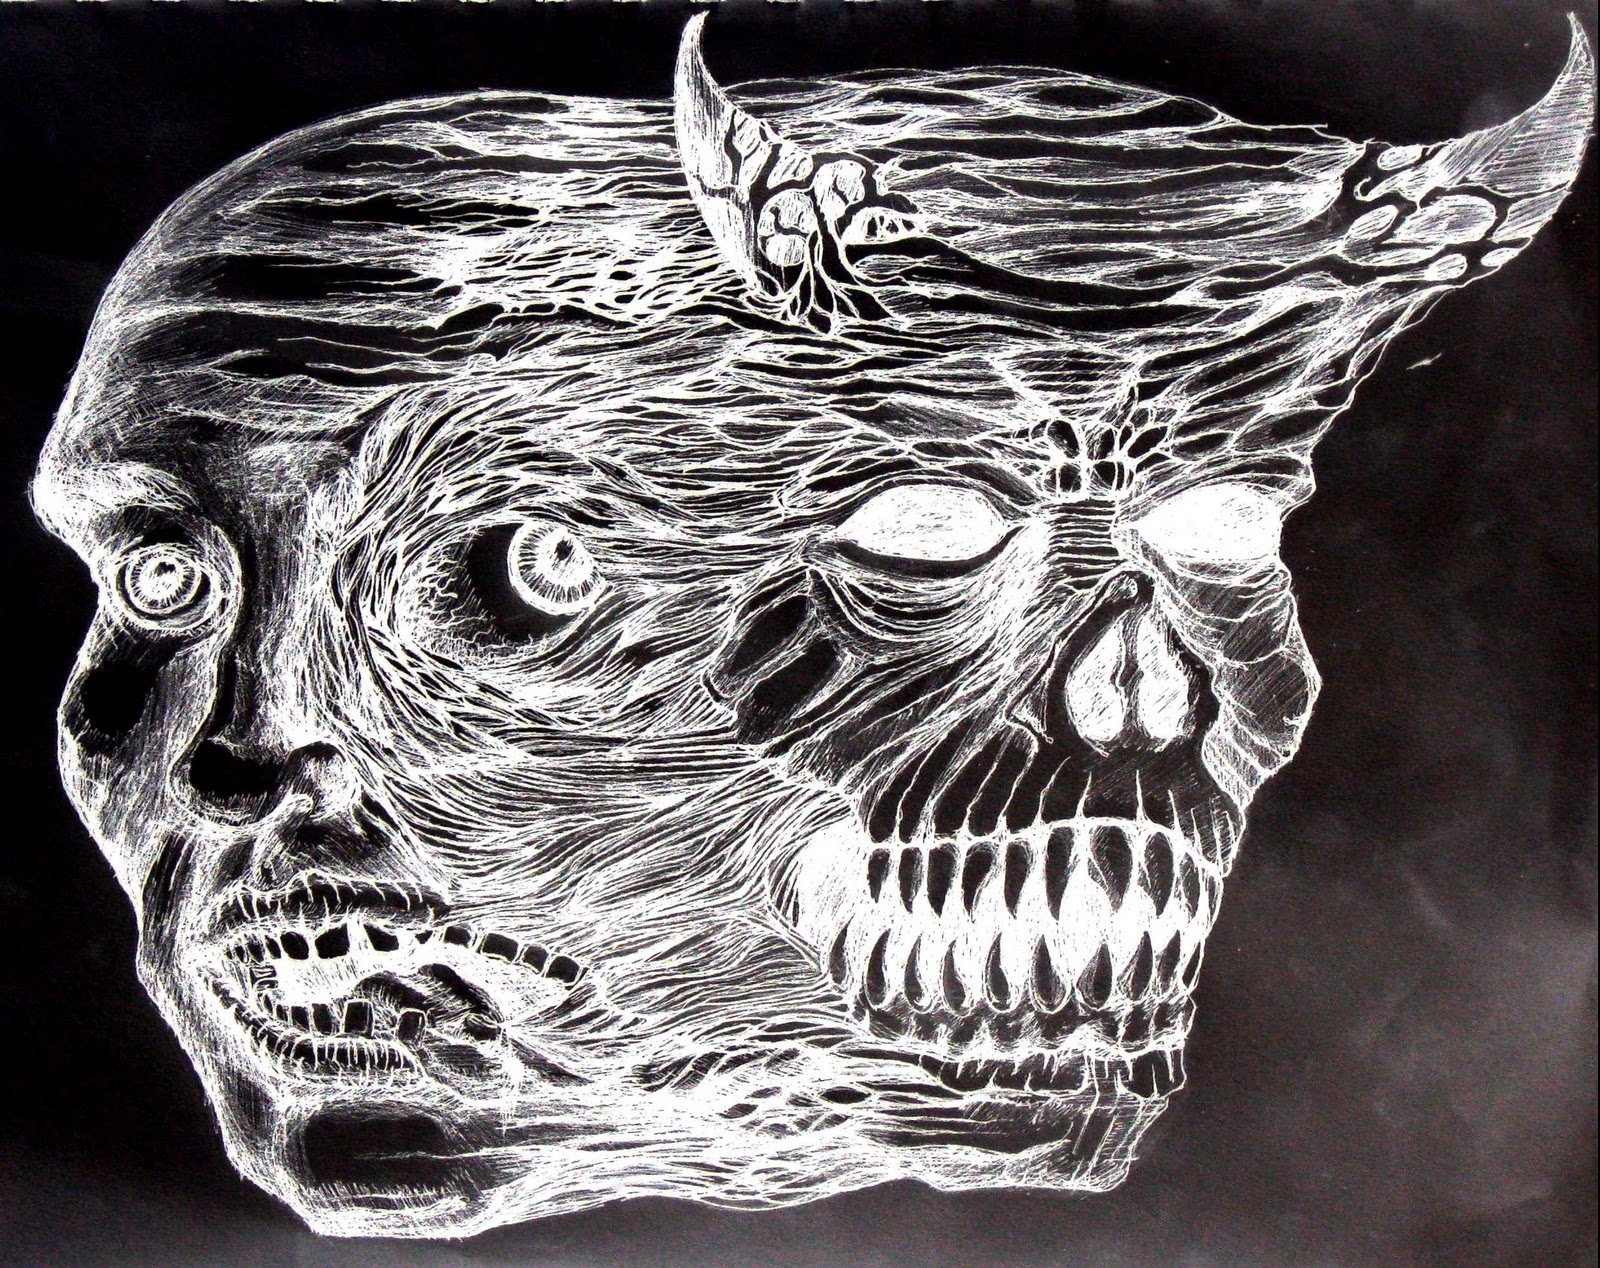 Paranoid Schizophrenia Drawings Amp Pictures Becuo